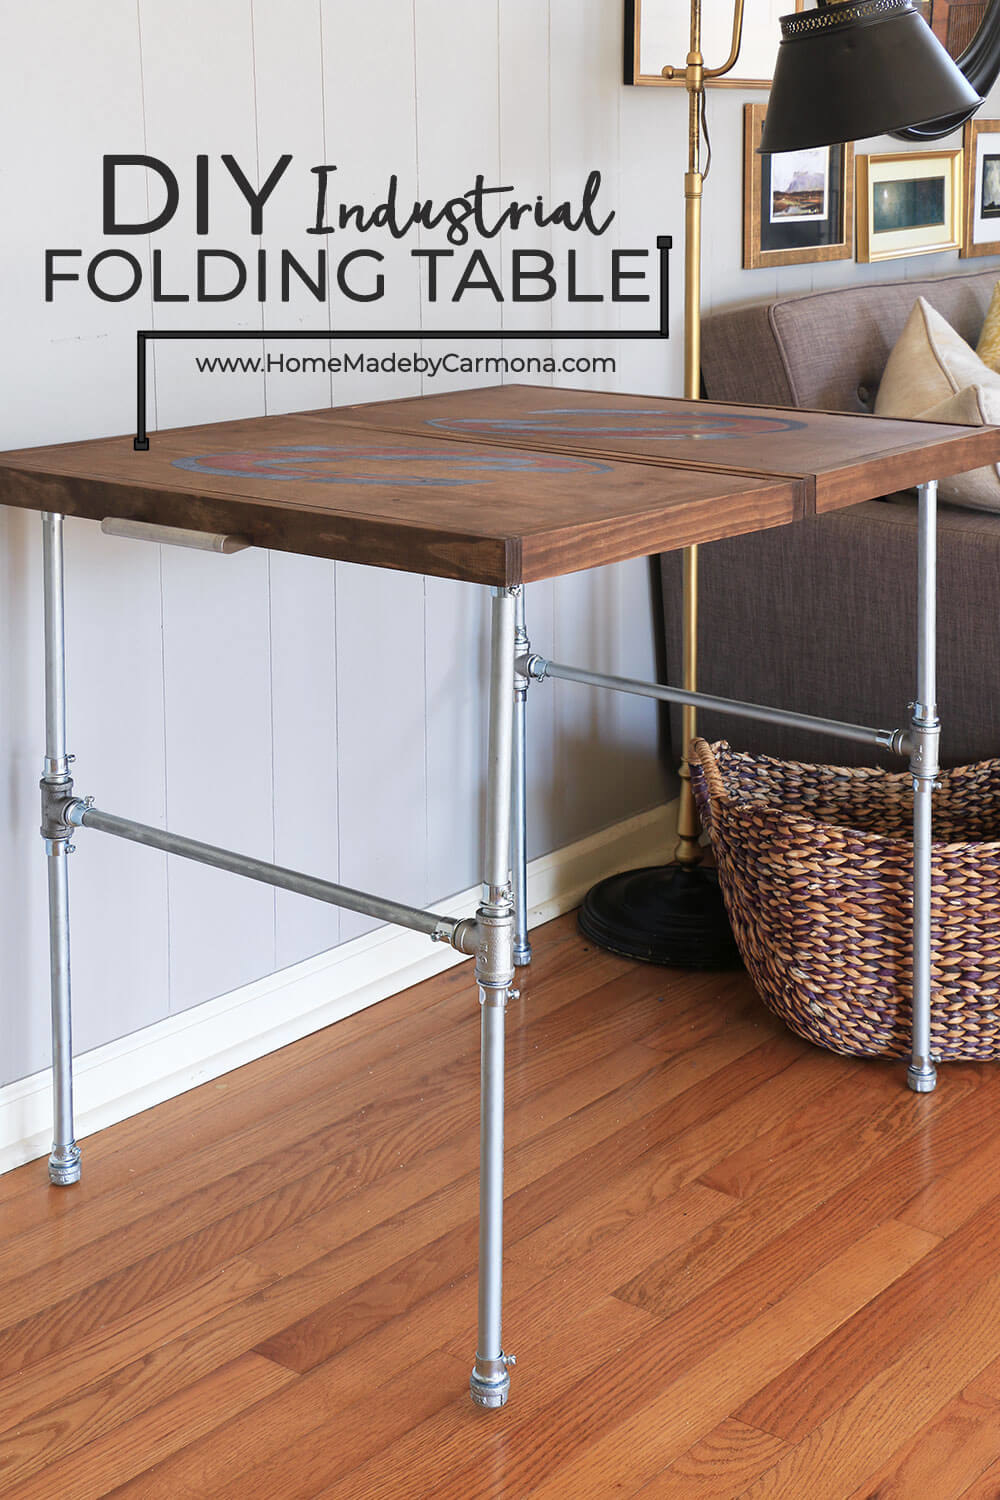 the DIY industrial folding table with a wooden surface and metal legs